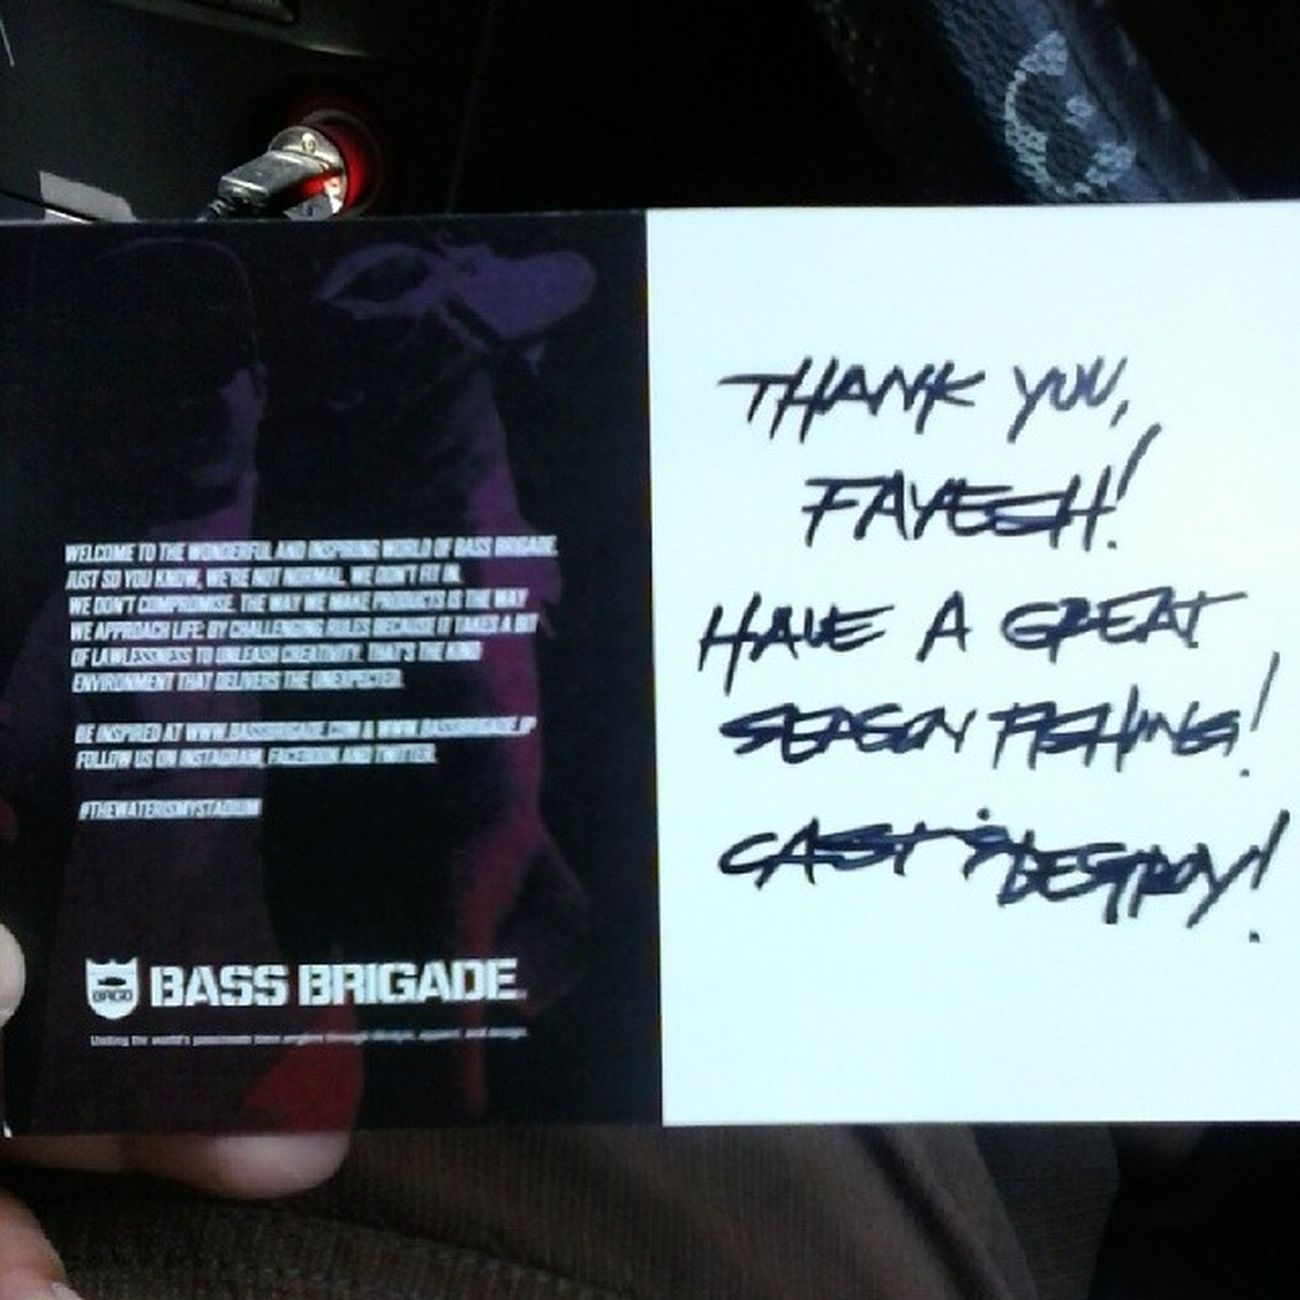 finally my item with me. thanks @bassbrigade Bassbrigade Castanddestroy Seekanddeploy